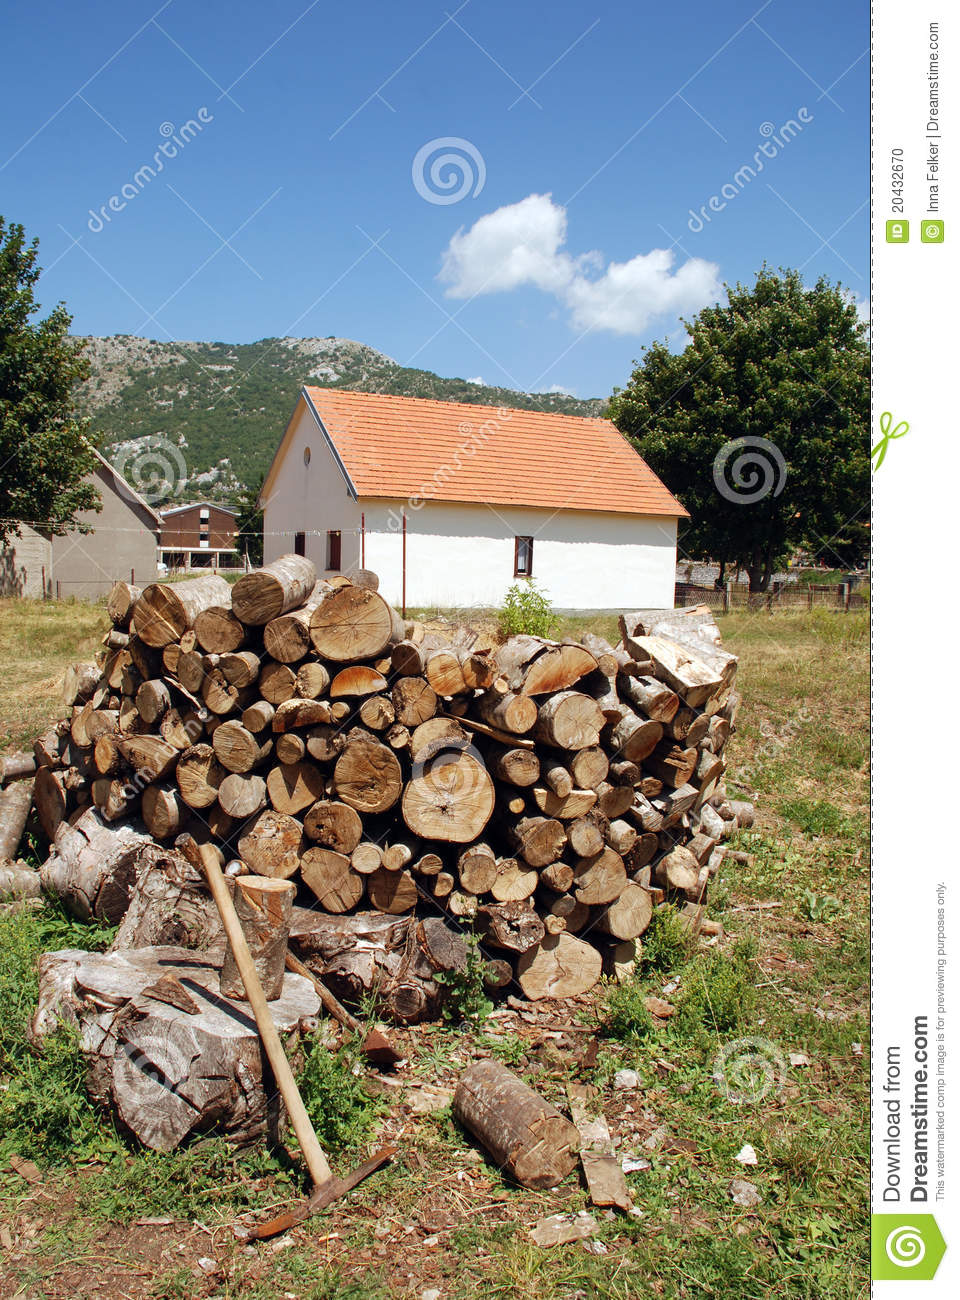 Country house with pile of firewood stock photo image for House piles